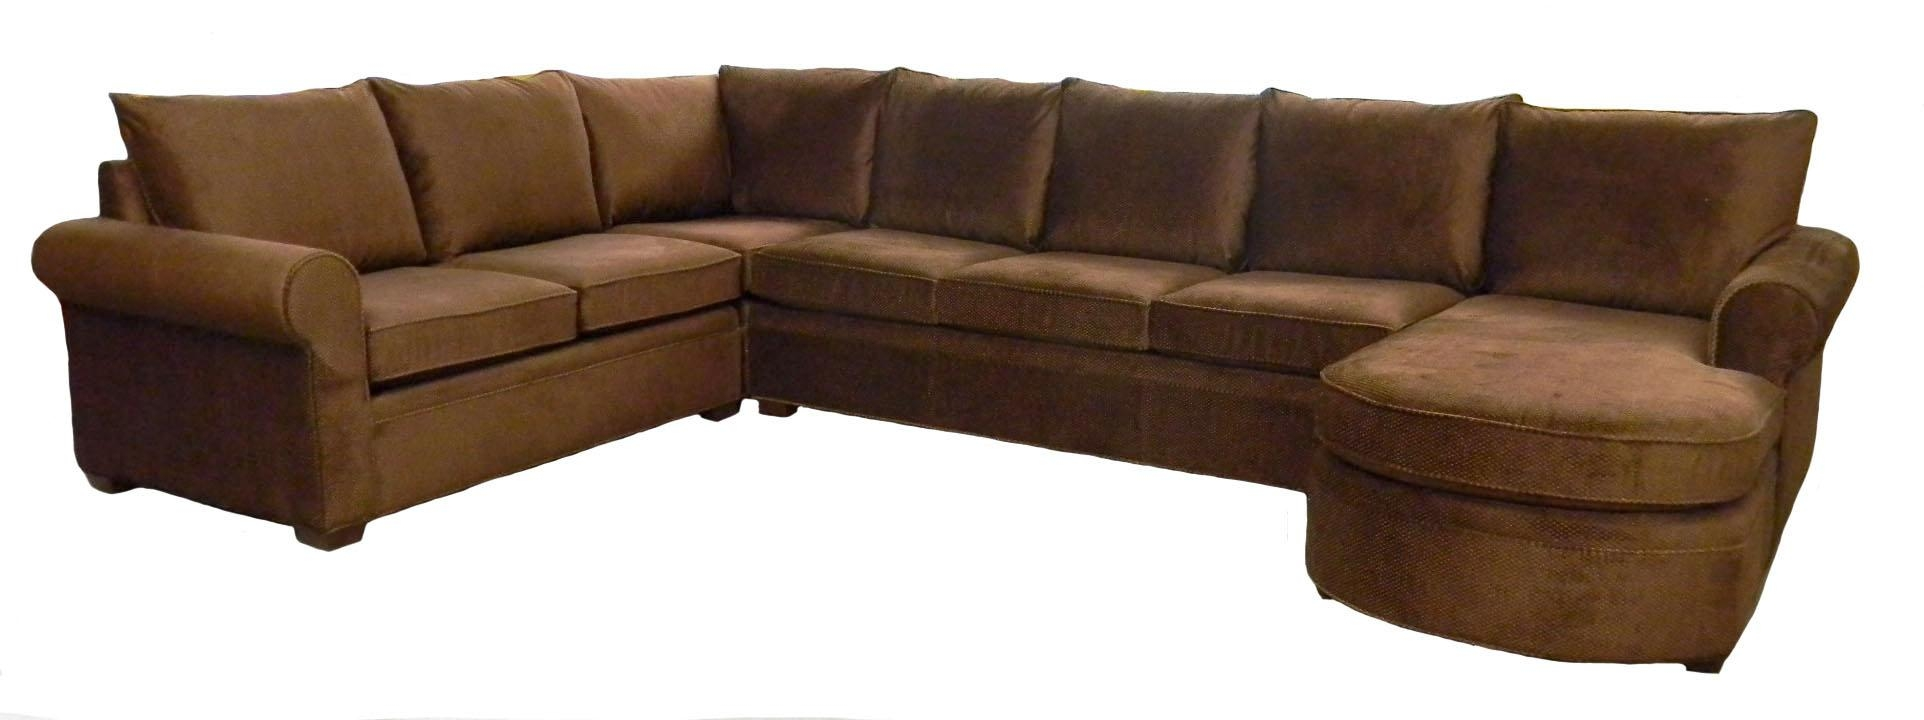 Furniture: Nice Square Sectional Sofa New Trend Living Room Intended For Nice Sectional Couches (Image 12 of 20)